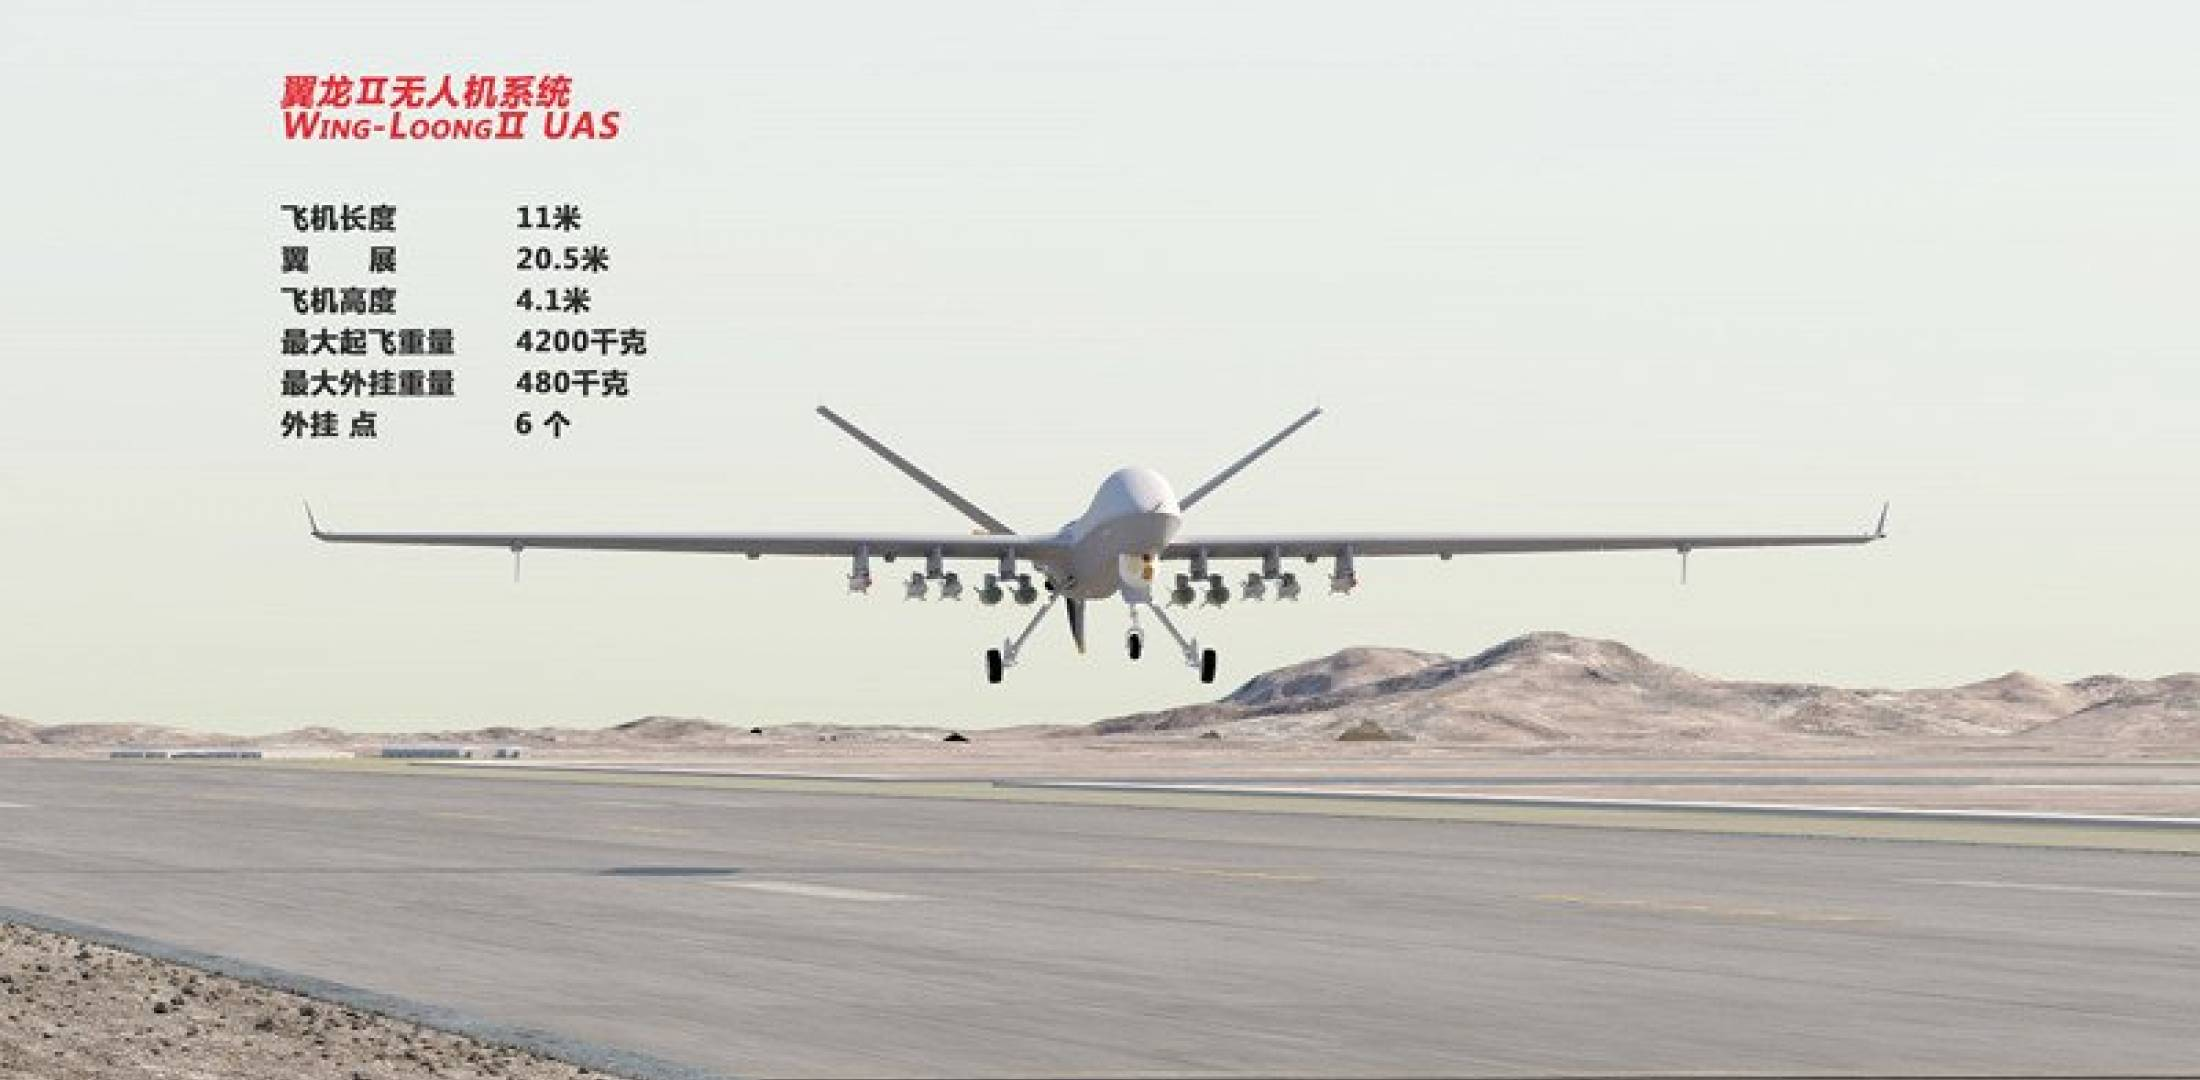 Wing-Loong II unmanned aircraft